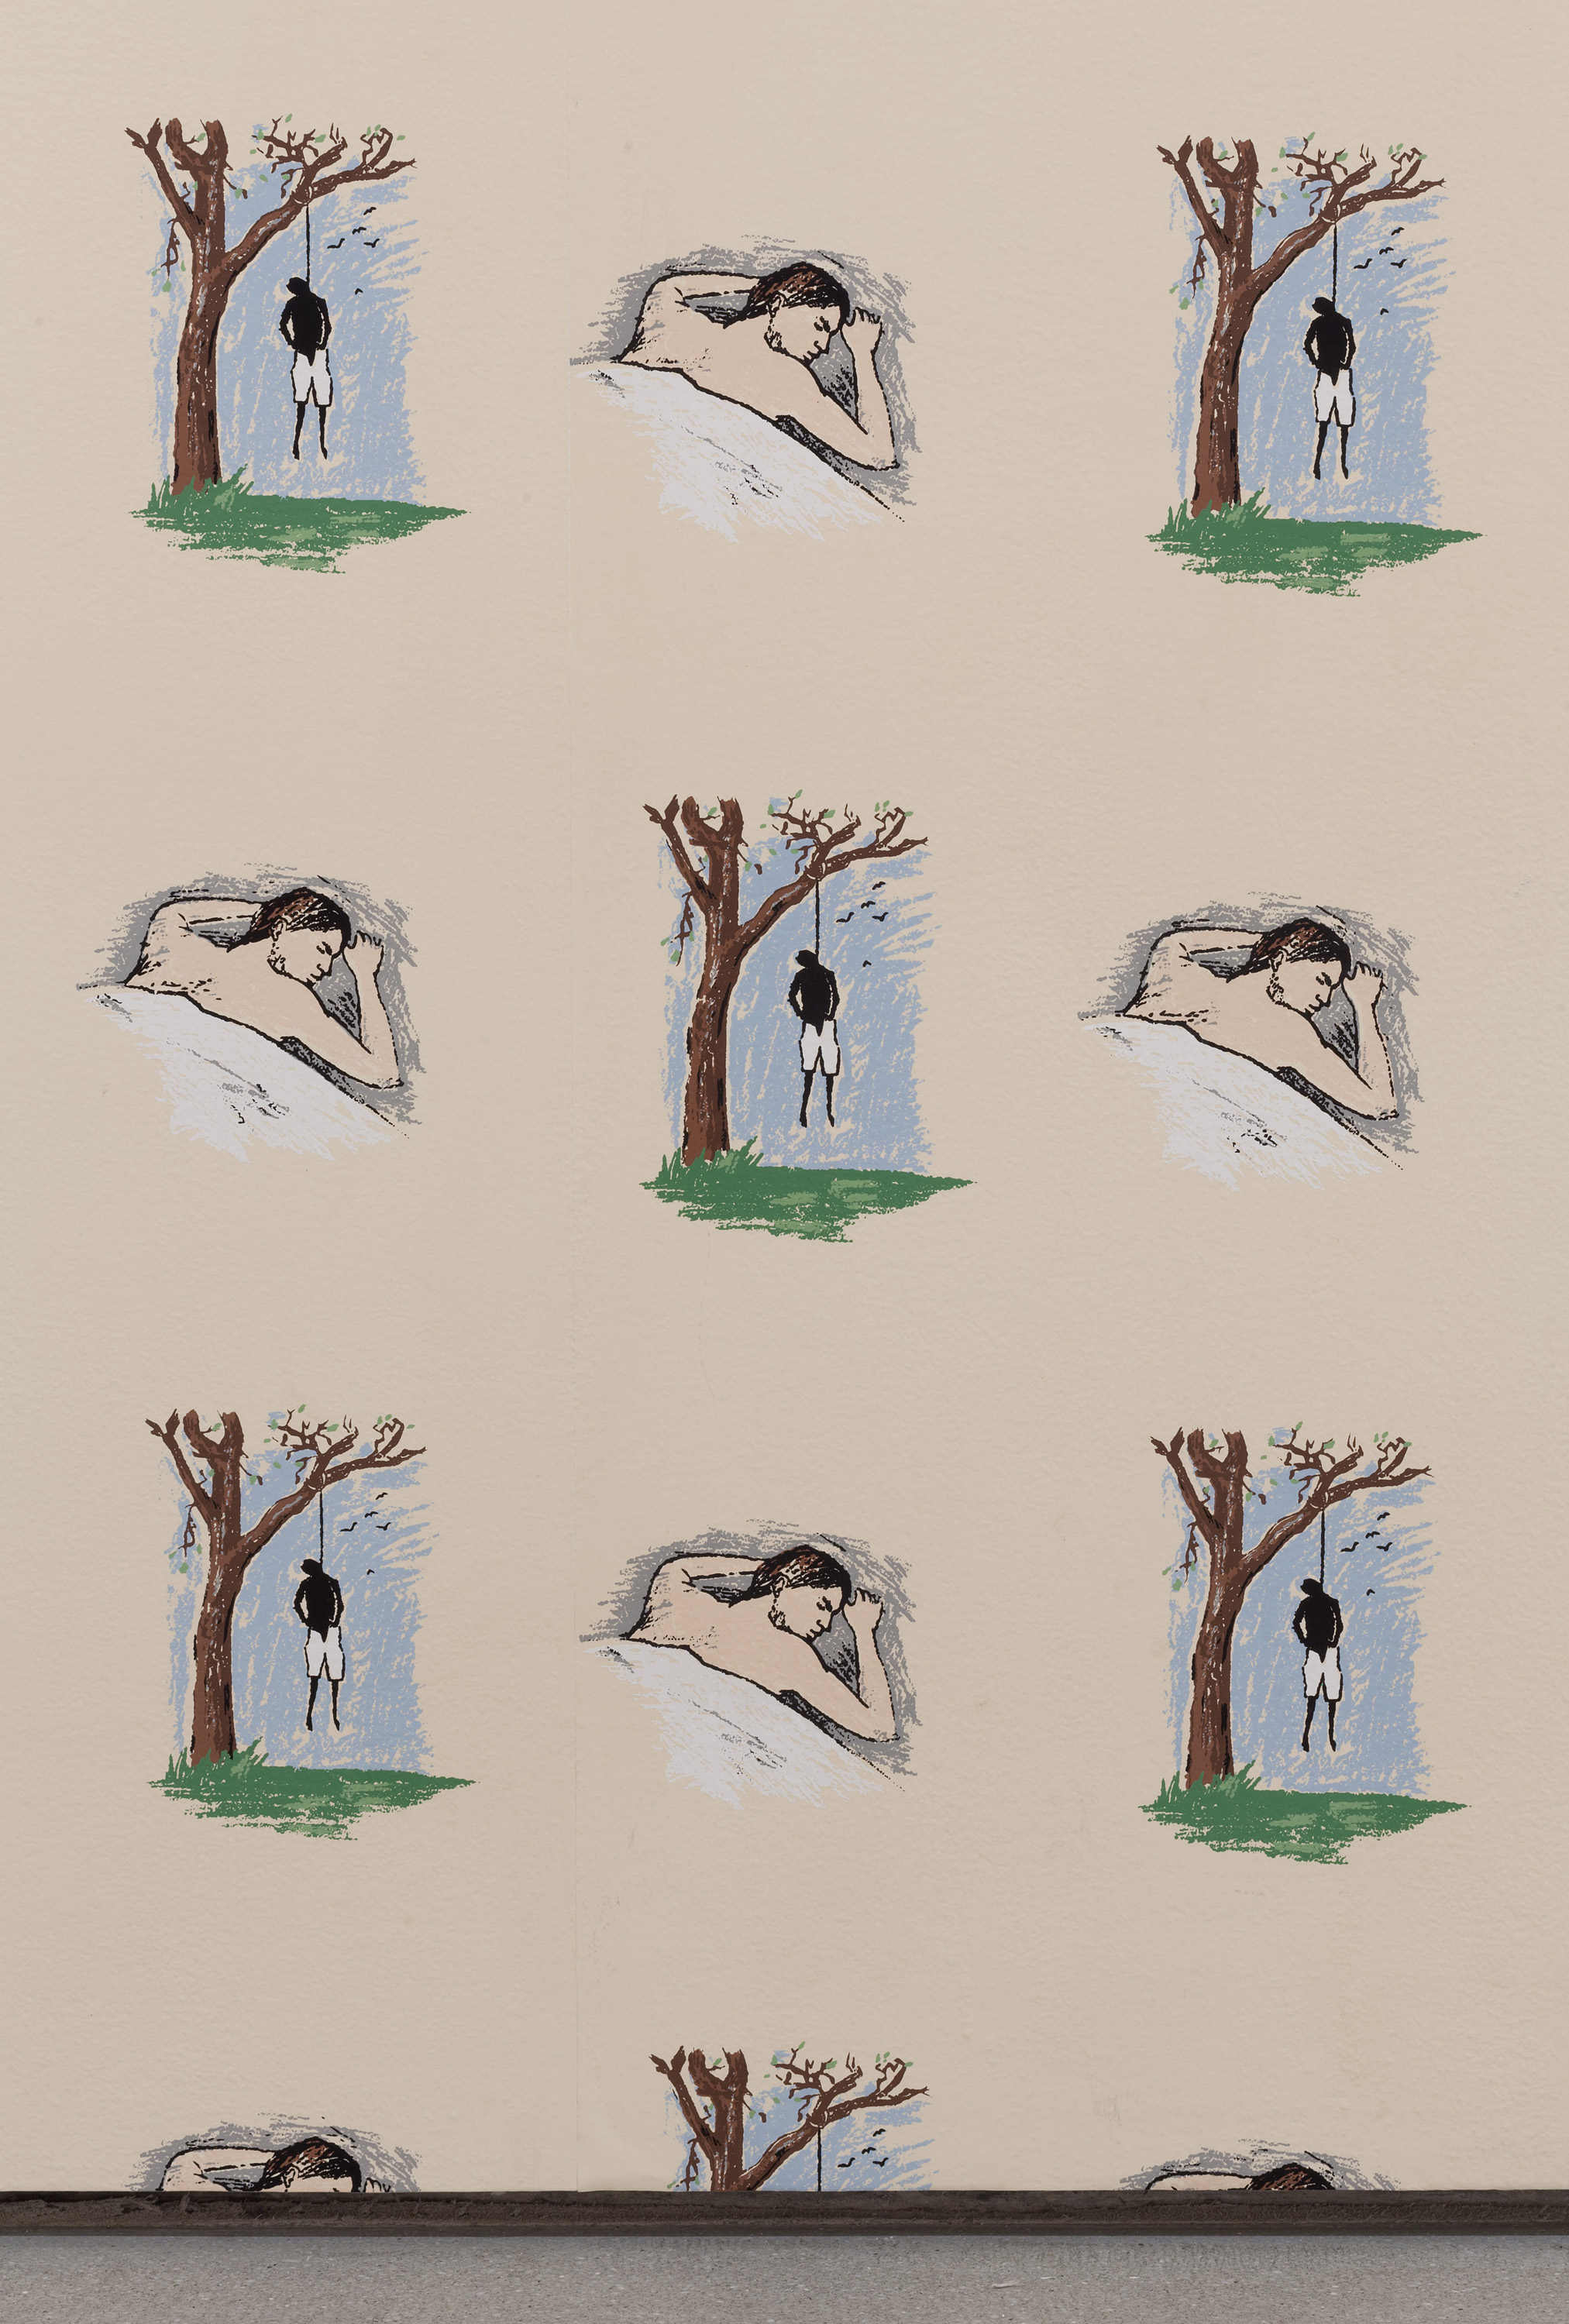 Robert Gober,  Hanging Man/Sleeping Man , 1989. Hand-printed silkscreen on paper. Photo credit: The Museum of Modern Art, Department of Imaging and Visual Resources, Thomas Griesel. Courtesy of the artist.